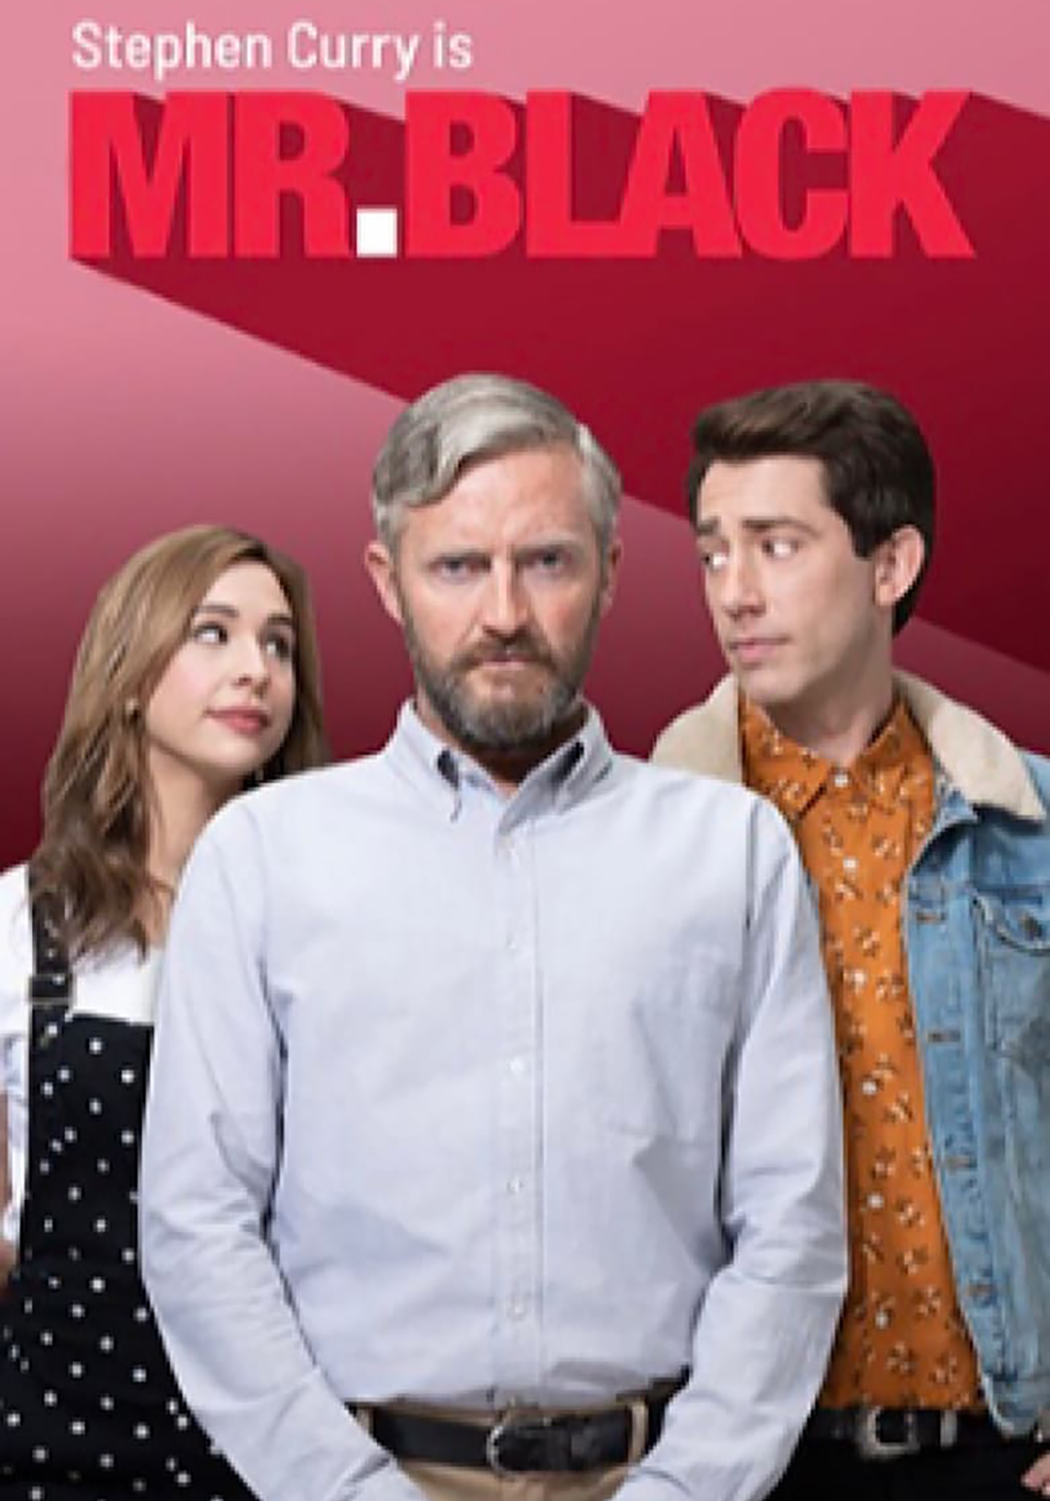 MR BLACK - 20198 x 23minDramaCJZFrom the creator of Wilfred, comes Mr. Black - the hilarious comedy about a dad who's struggling to accept his daughter's boyfriend.Produced by CJZ for Channel 10, City Post was proud to host the Melbourne production and post production team.